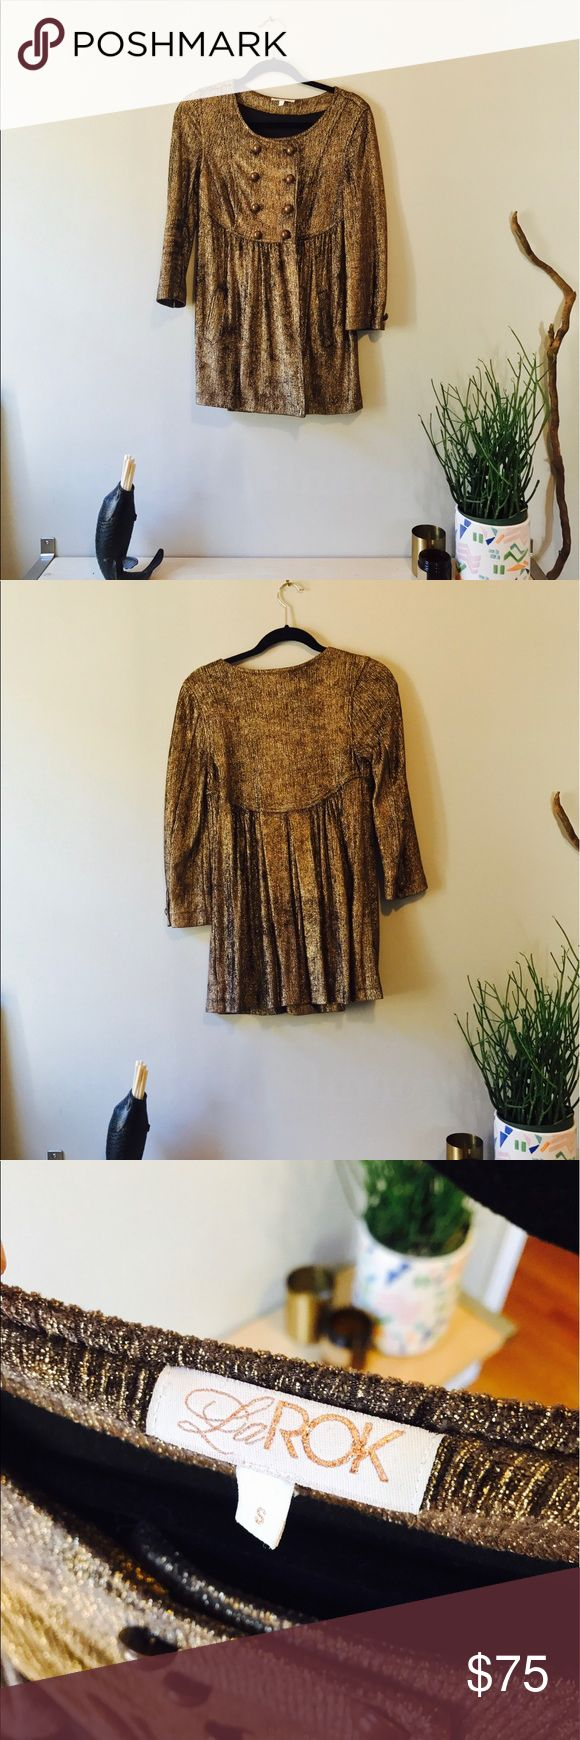 La Rok Tunic. Size S. Gold La Rok double breasted tunic for sale. Throw your hair in a ponytail and glam it up. 💅💄 la rok Tops Tunics